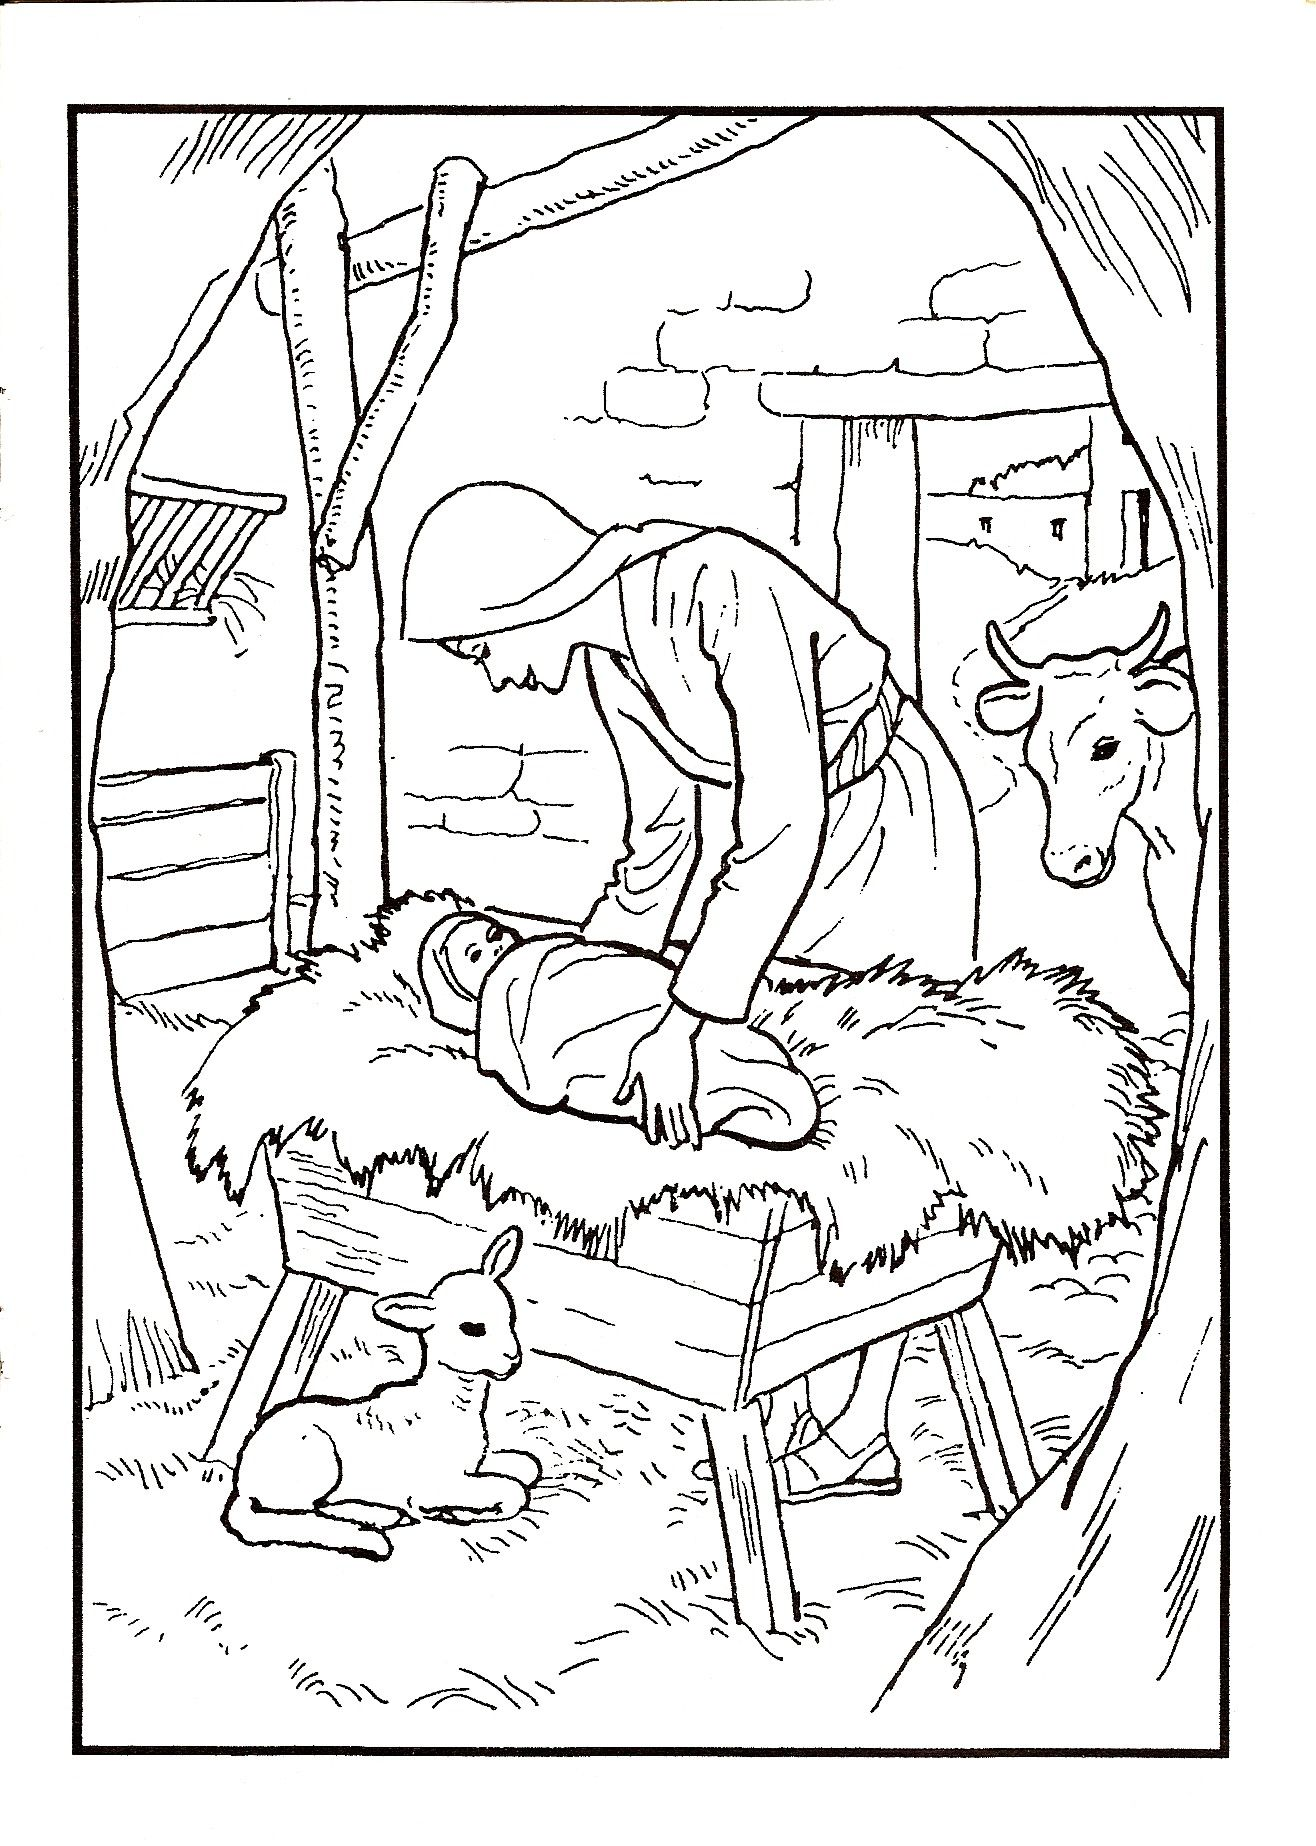 Jesus birth | Jesus crafts, Coloring pages, Birth of jesus